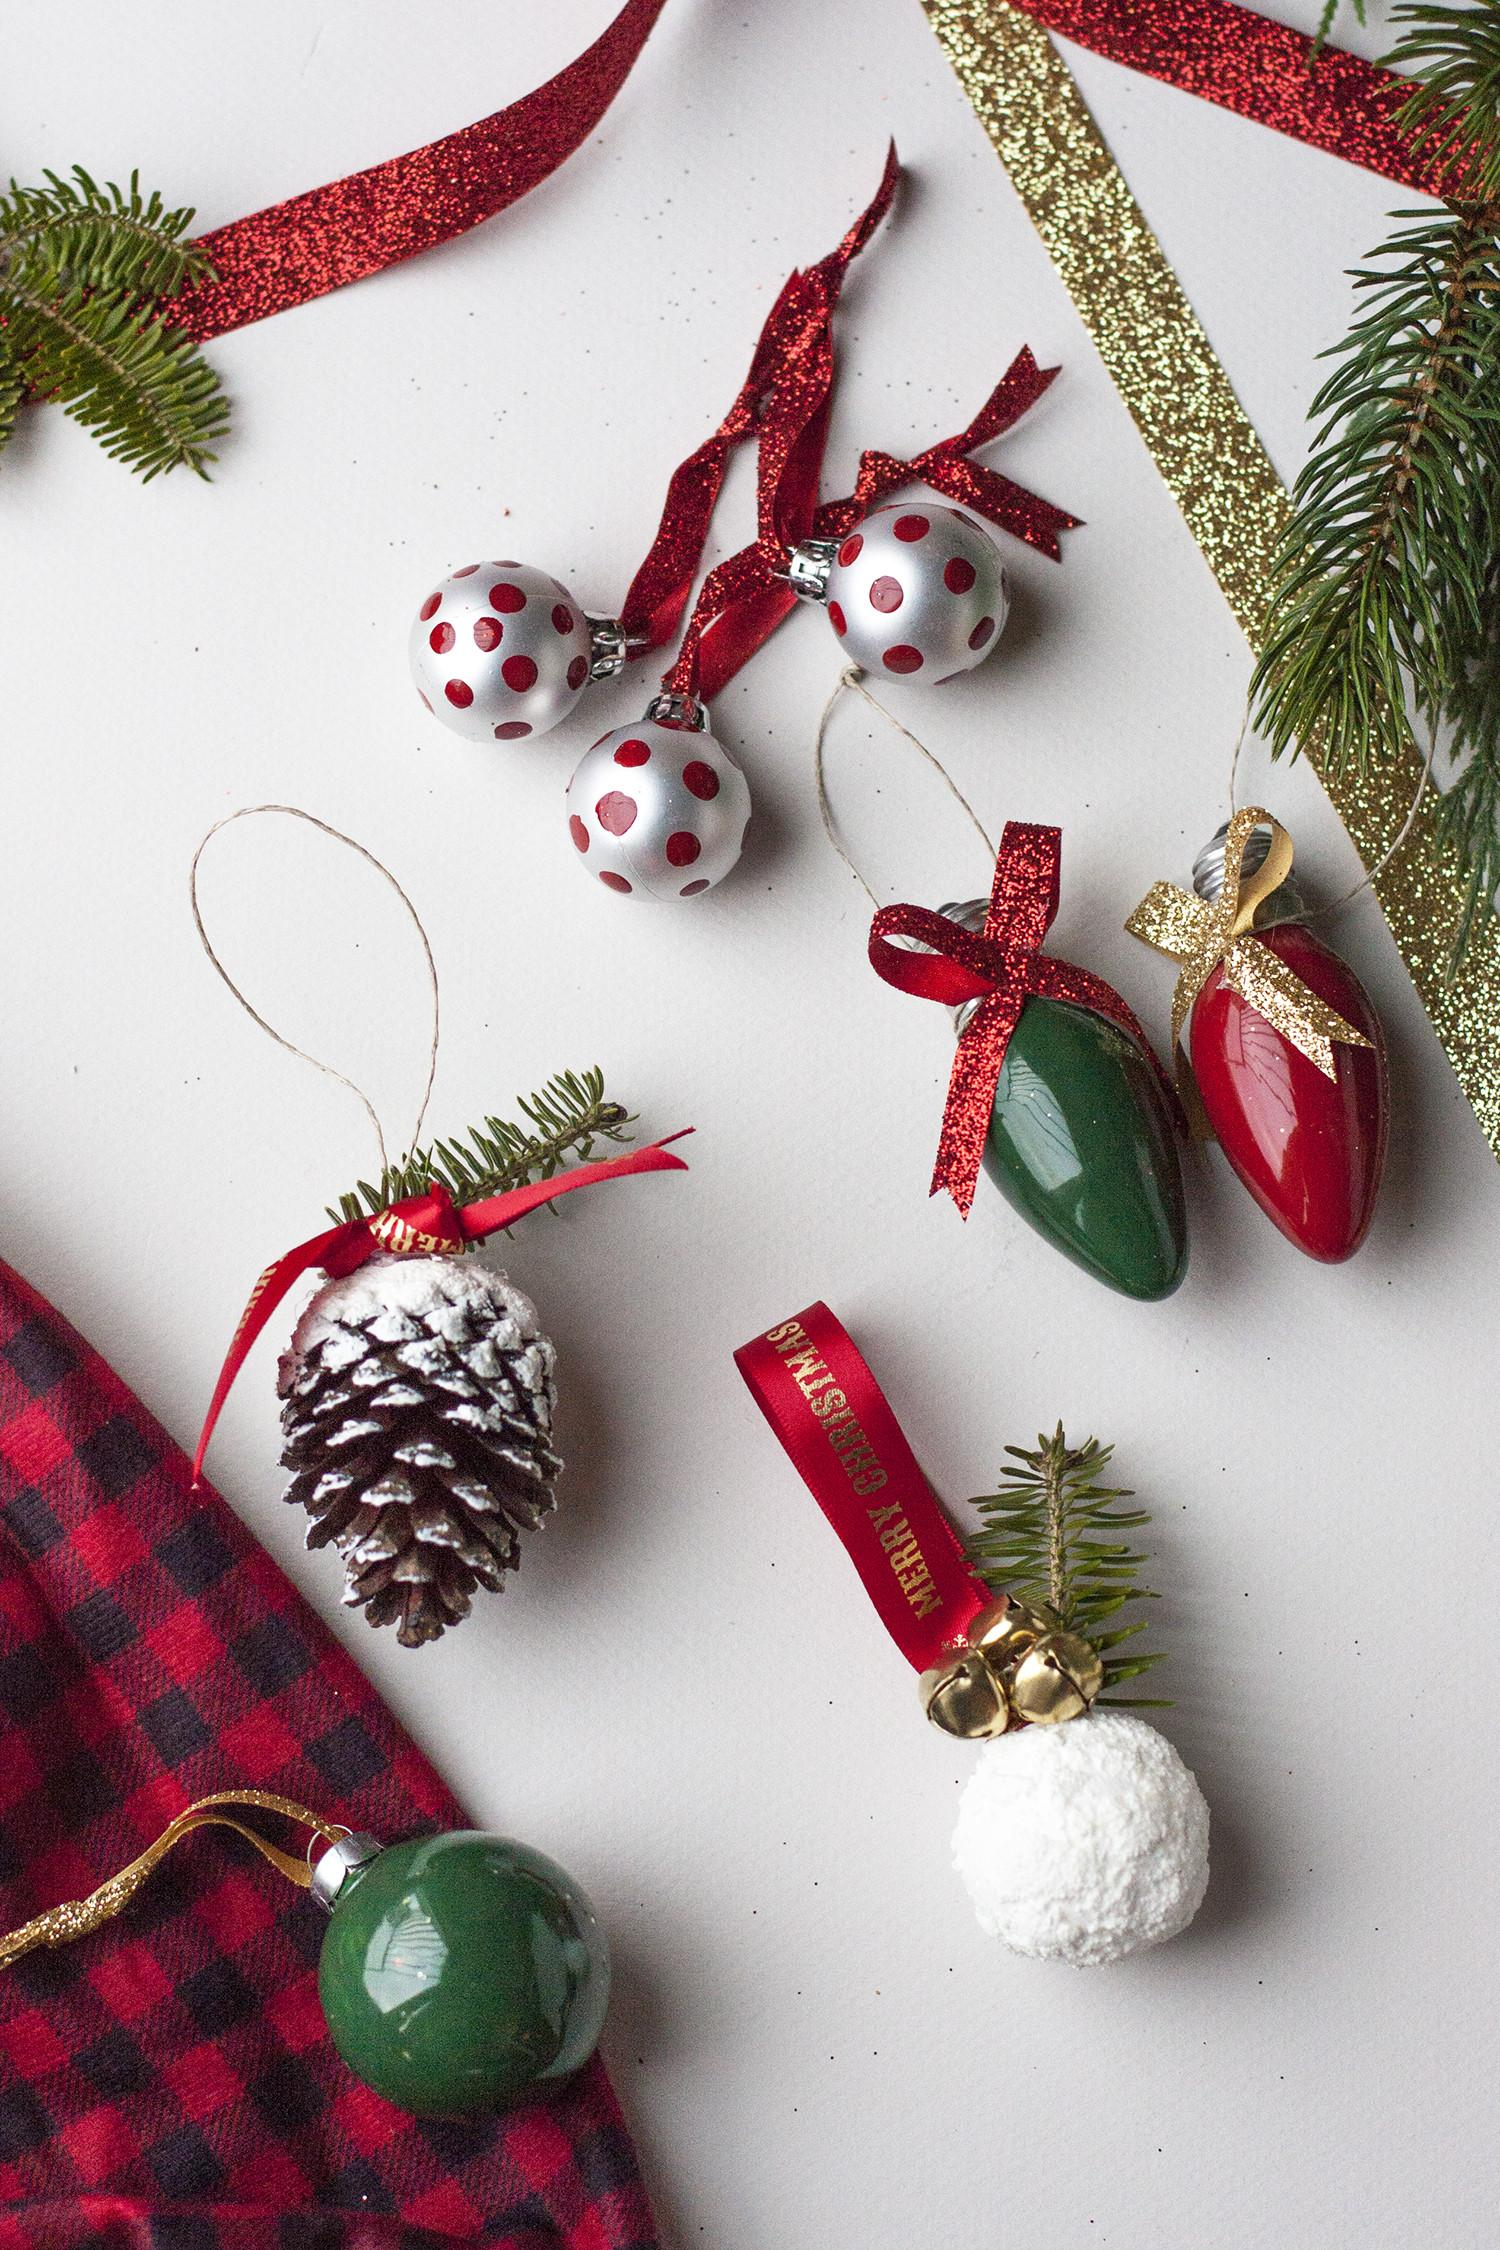 Diy Christmas Ornaments Thrifty Ideas Small Stuff Counts